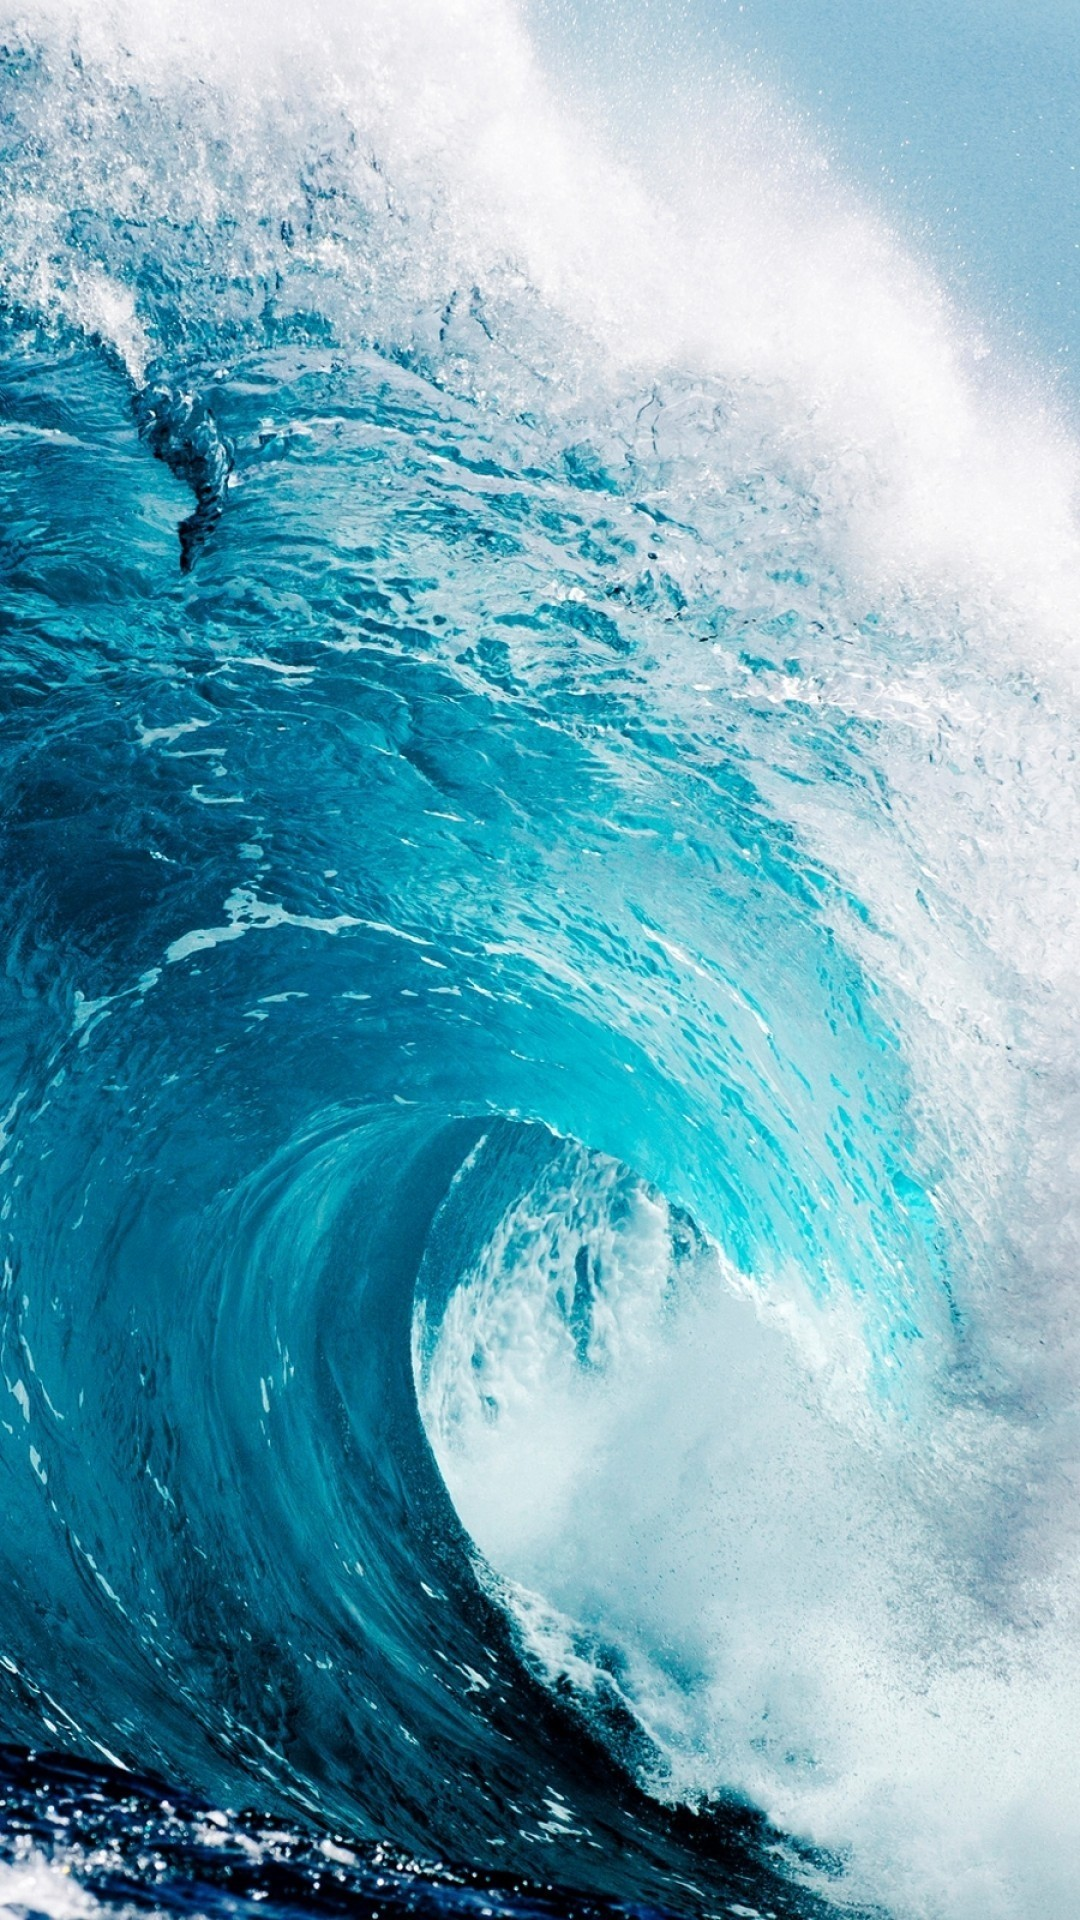 Ocean Waves wallpaper for android